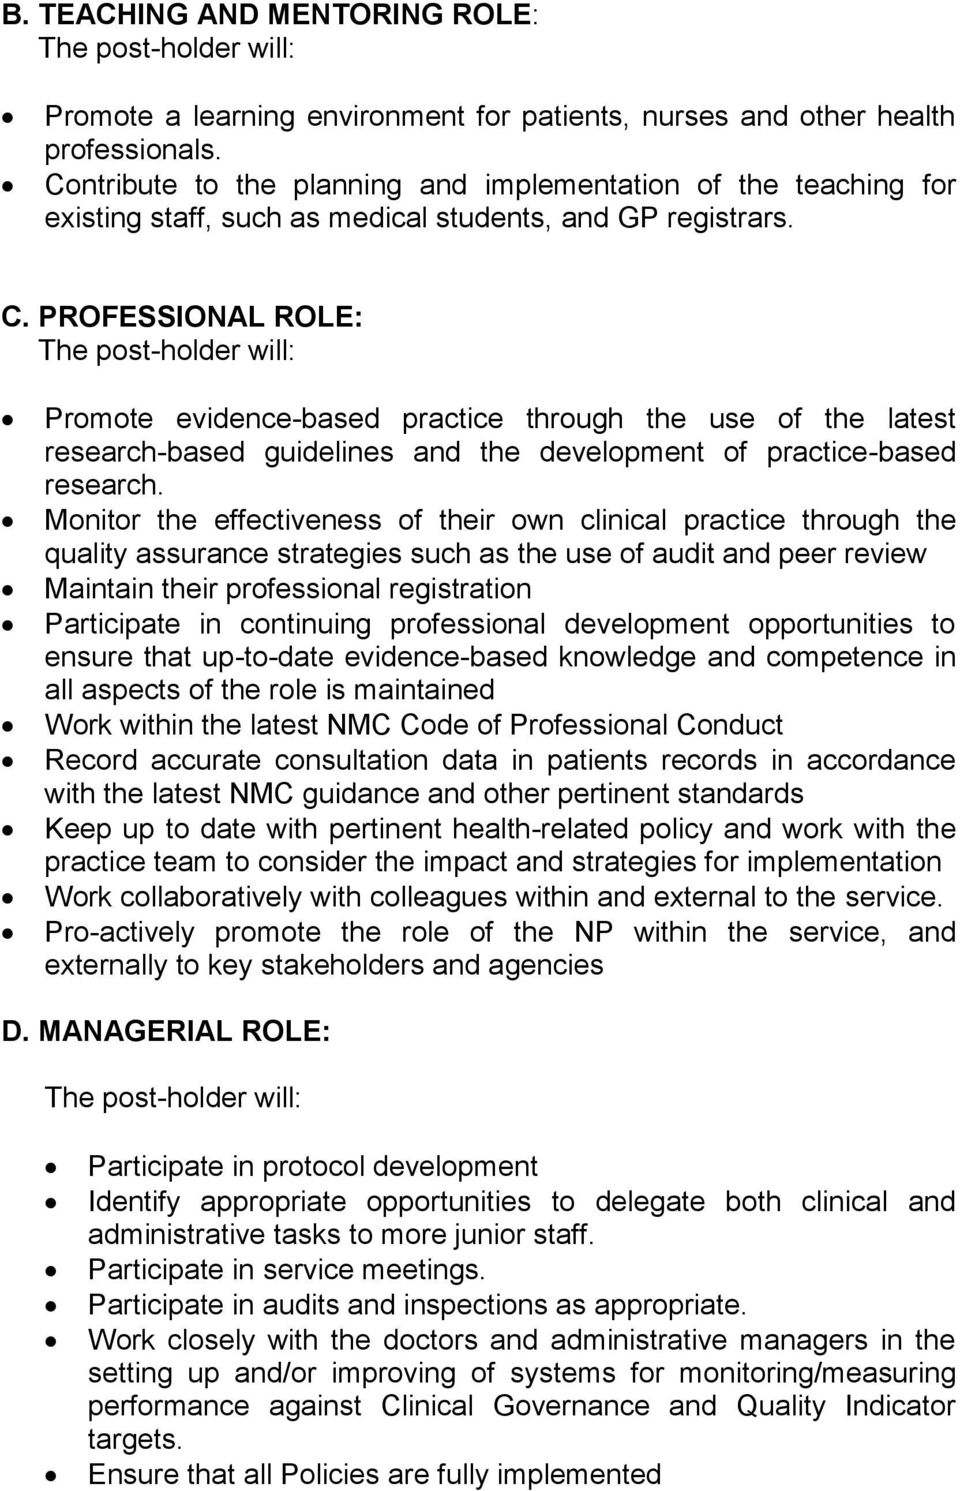 PROFESSIONAL ROLE: Promote evidence-based practice through the use of the latest research-based guidelines and the development of practice-based research.